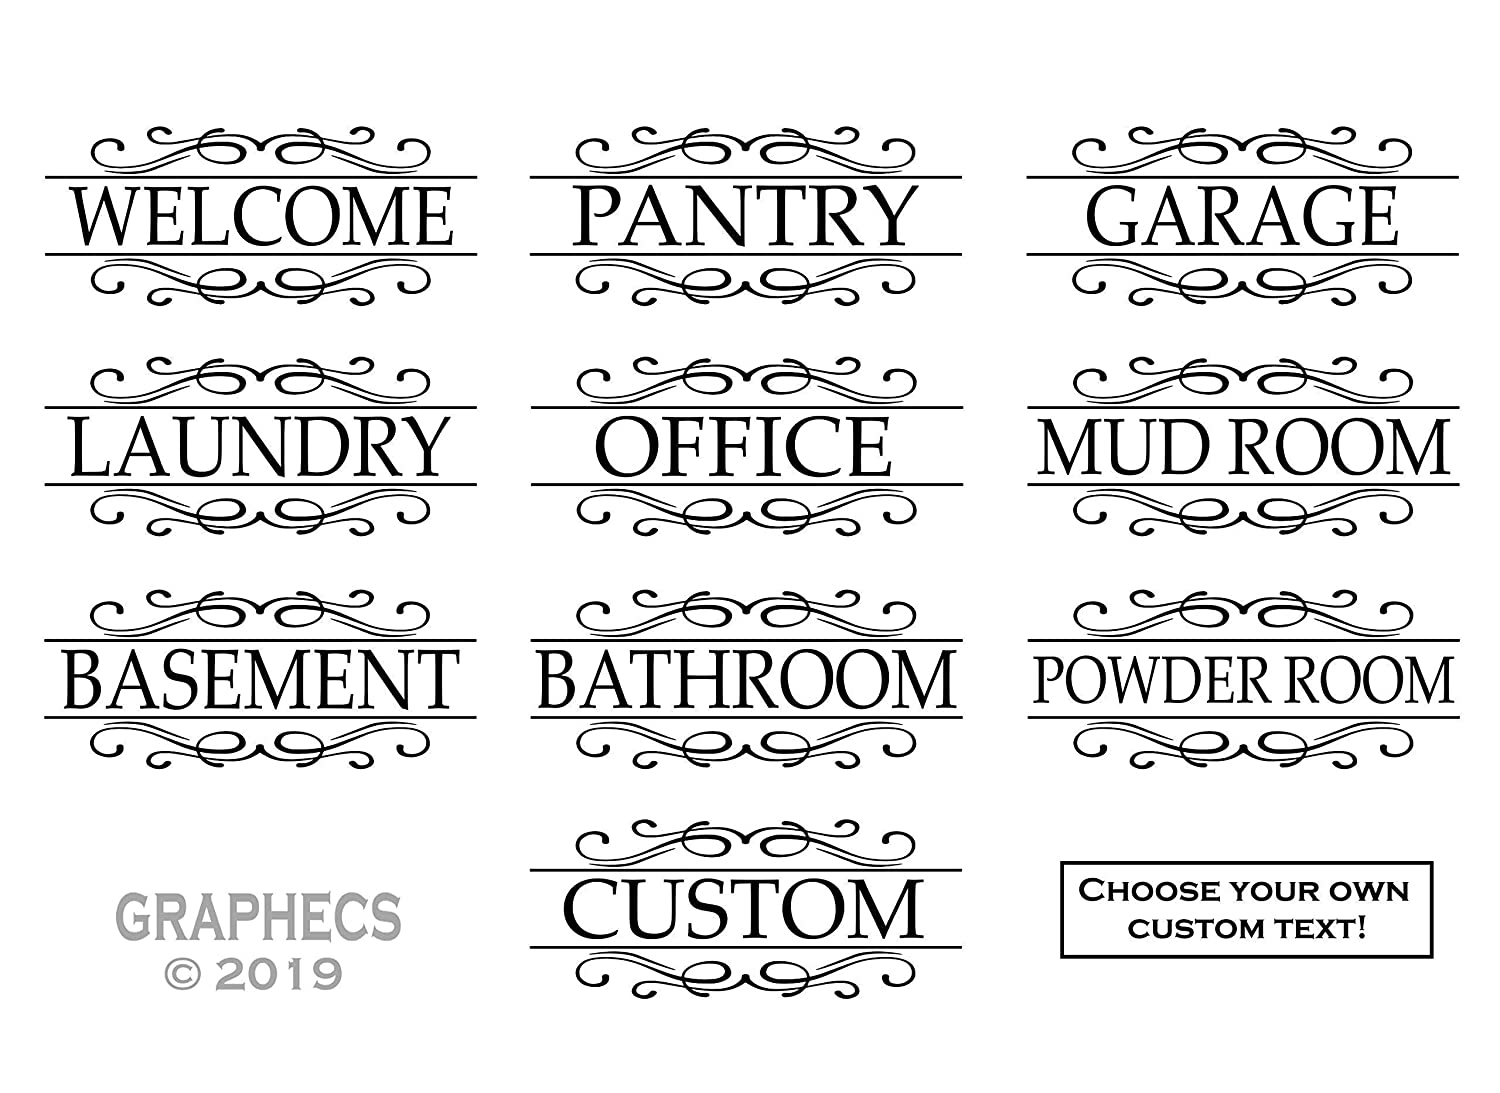 Custom Door Decal Labels - Pantry Laundry Welcome Office Personalized Sticker Glass Door Luxurious Decor